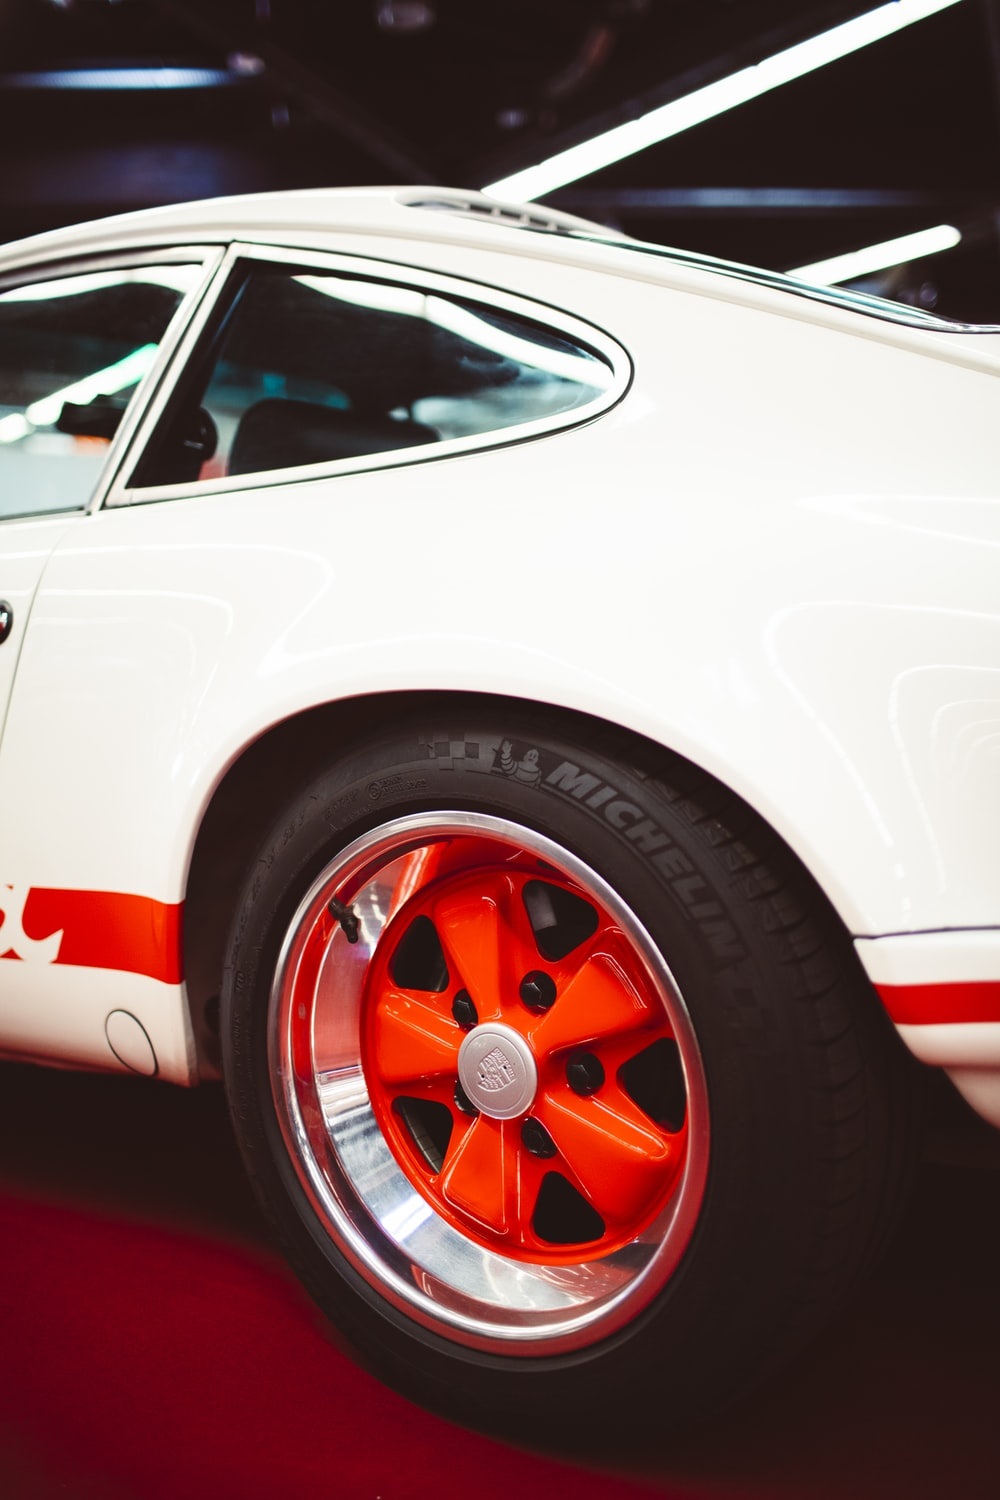 white and red car in close up photography